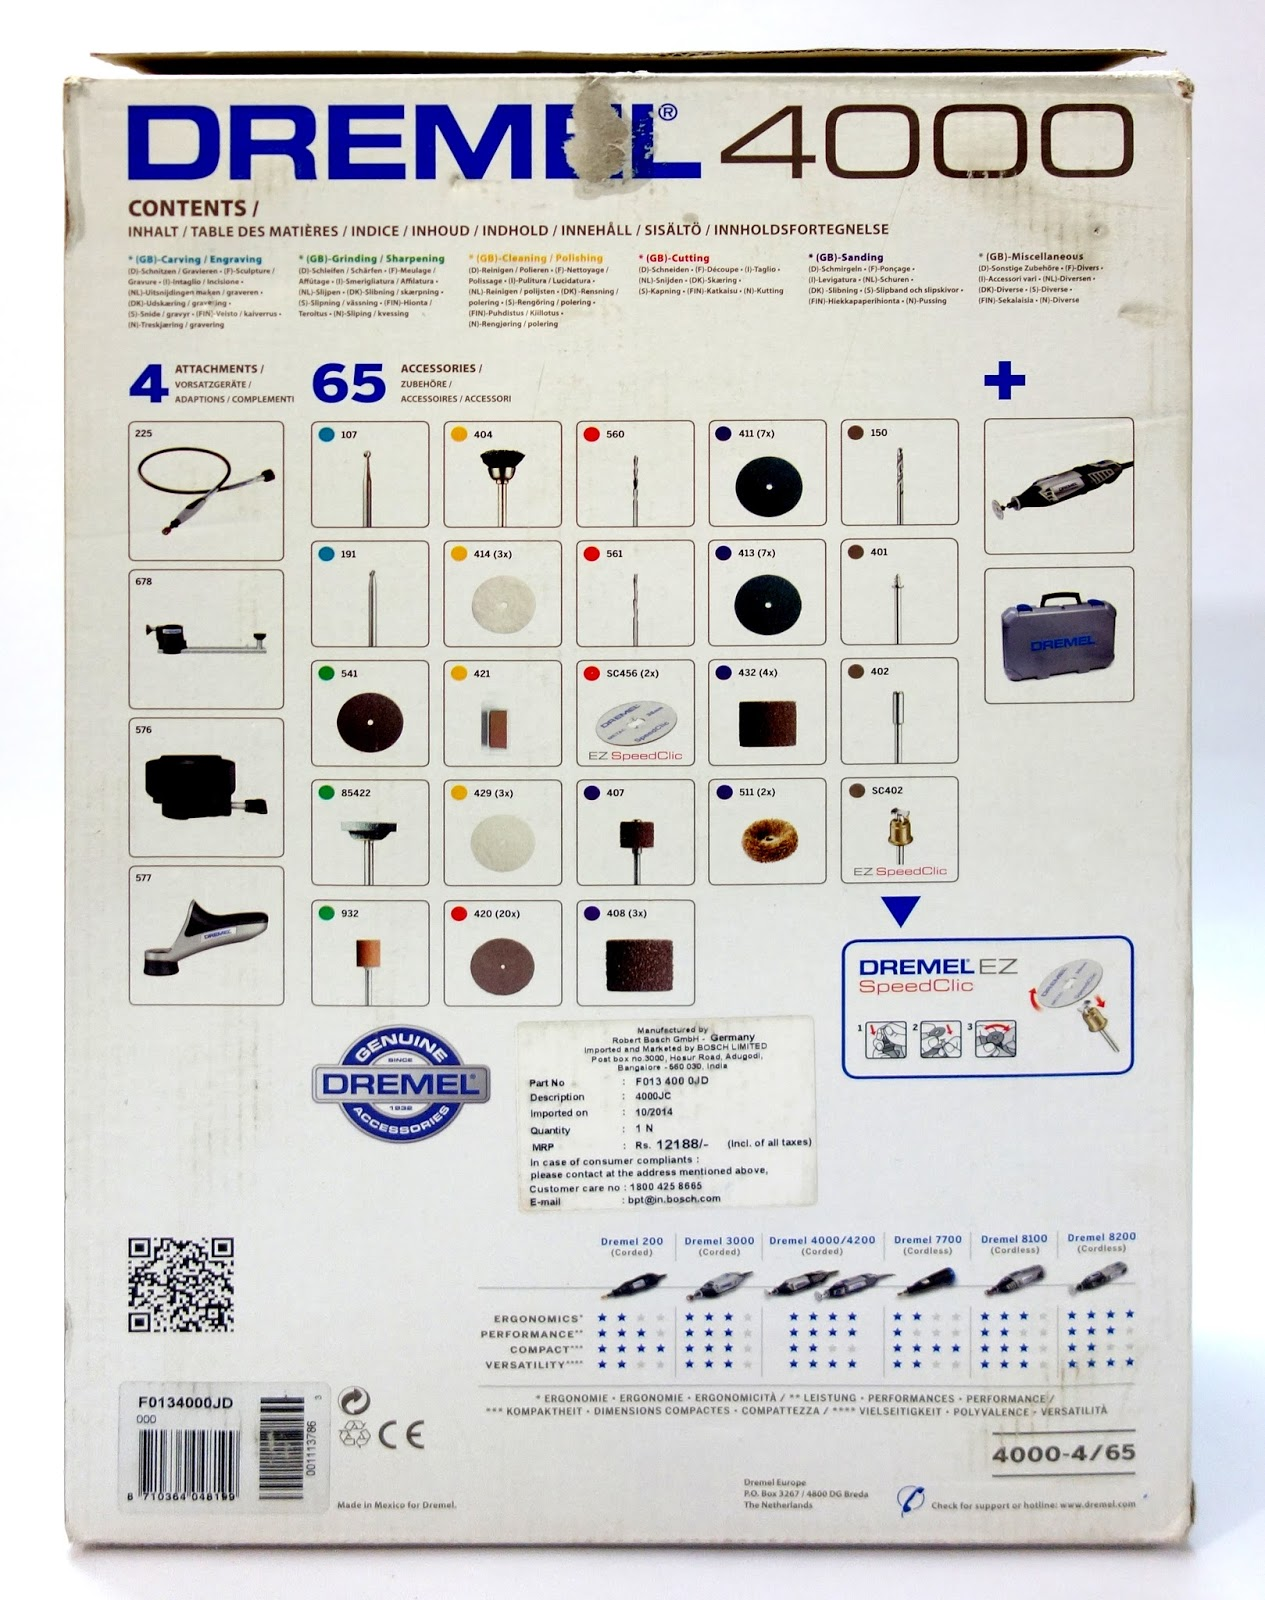 dremel 400 xpr wiring diagram best wiring library End Mill Diagram dremel accessory diagram wiring diagram todays